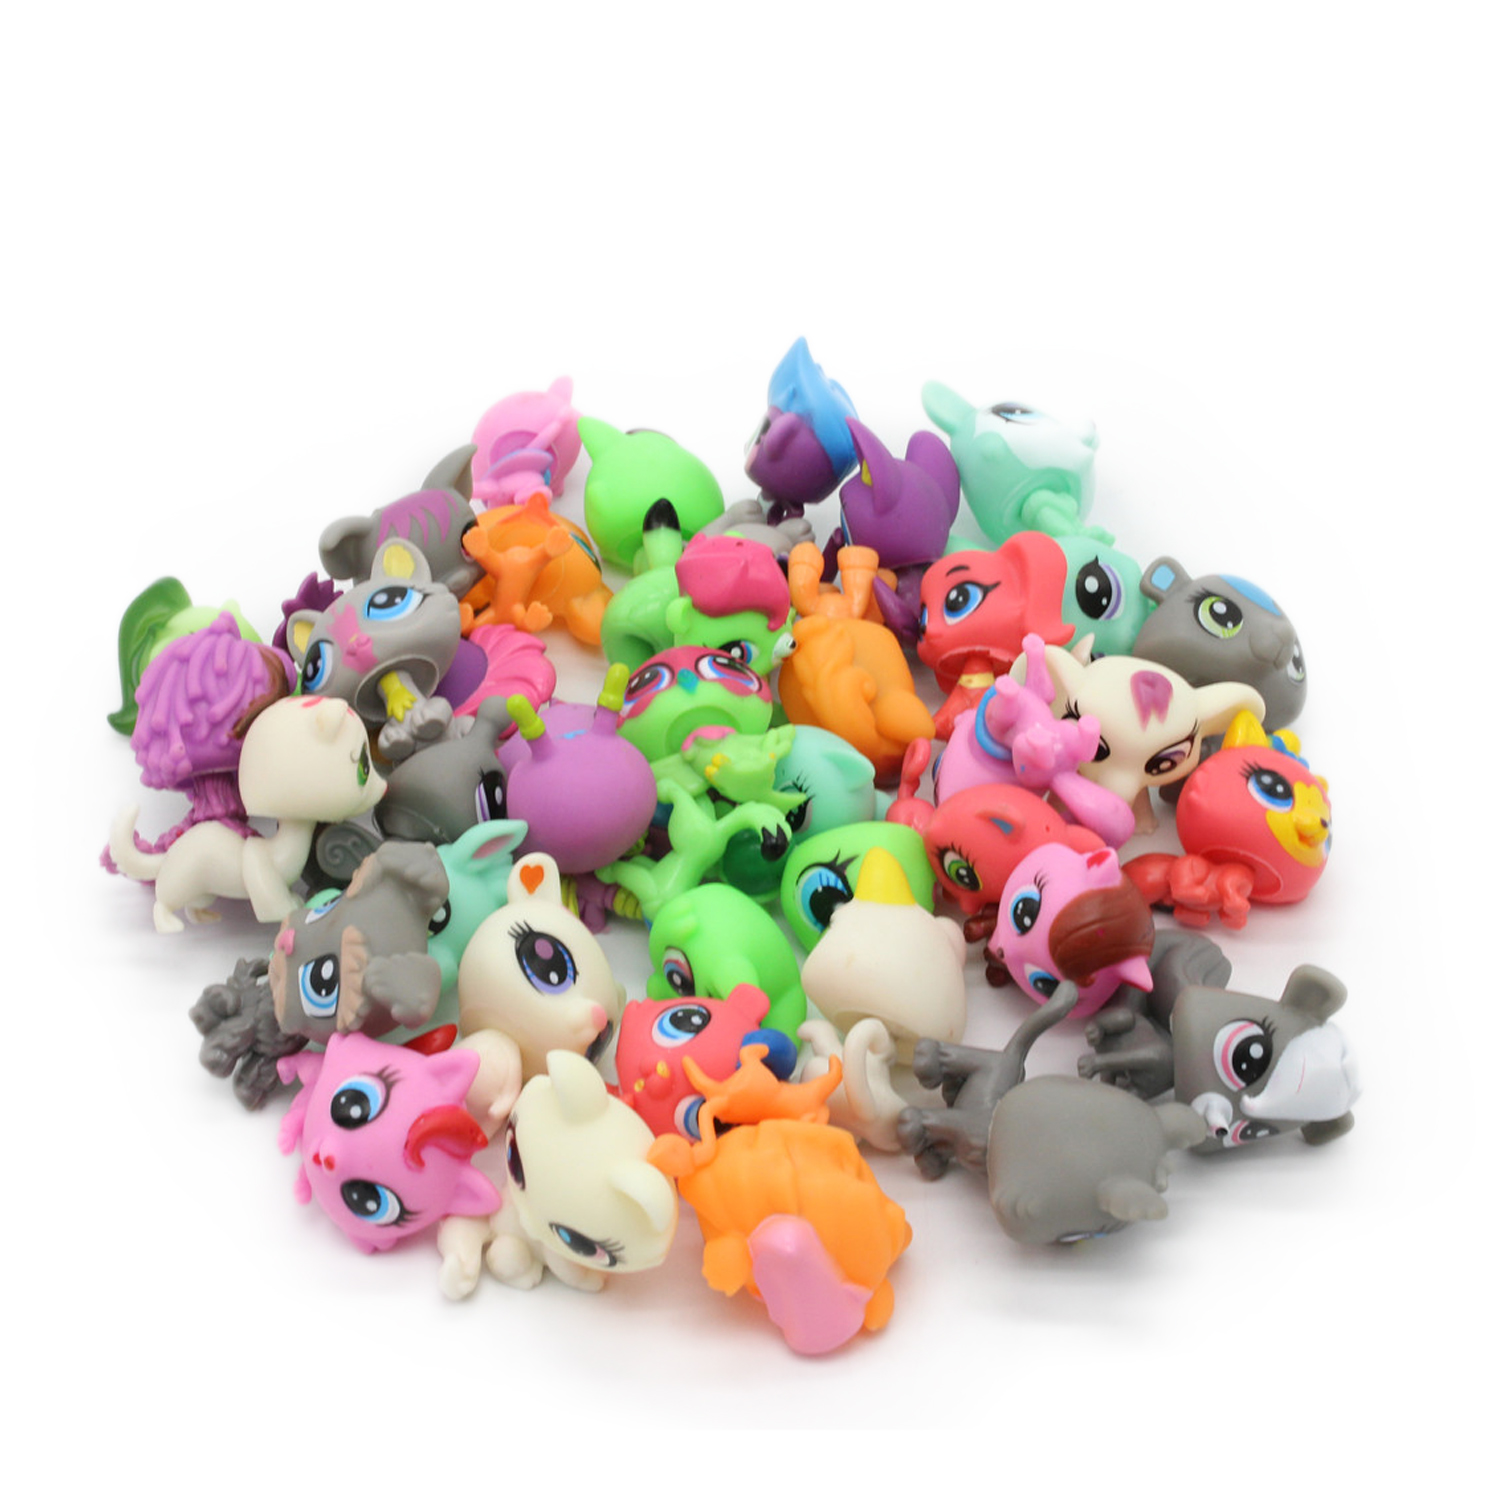 LPS New Style lps Toy bag 32Pcs/bag Little Pet Shop Mini Toy Animal Cat patrulla canina dog Action Figures Kids toys lps lps toy bag 20pcs pet shop animals cats kids children action figures pvc lps toy birthday gift 4 5cm